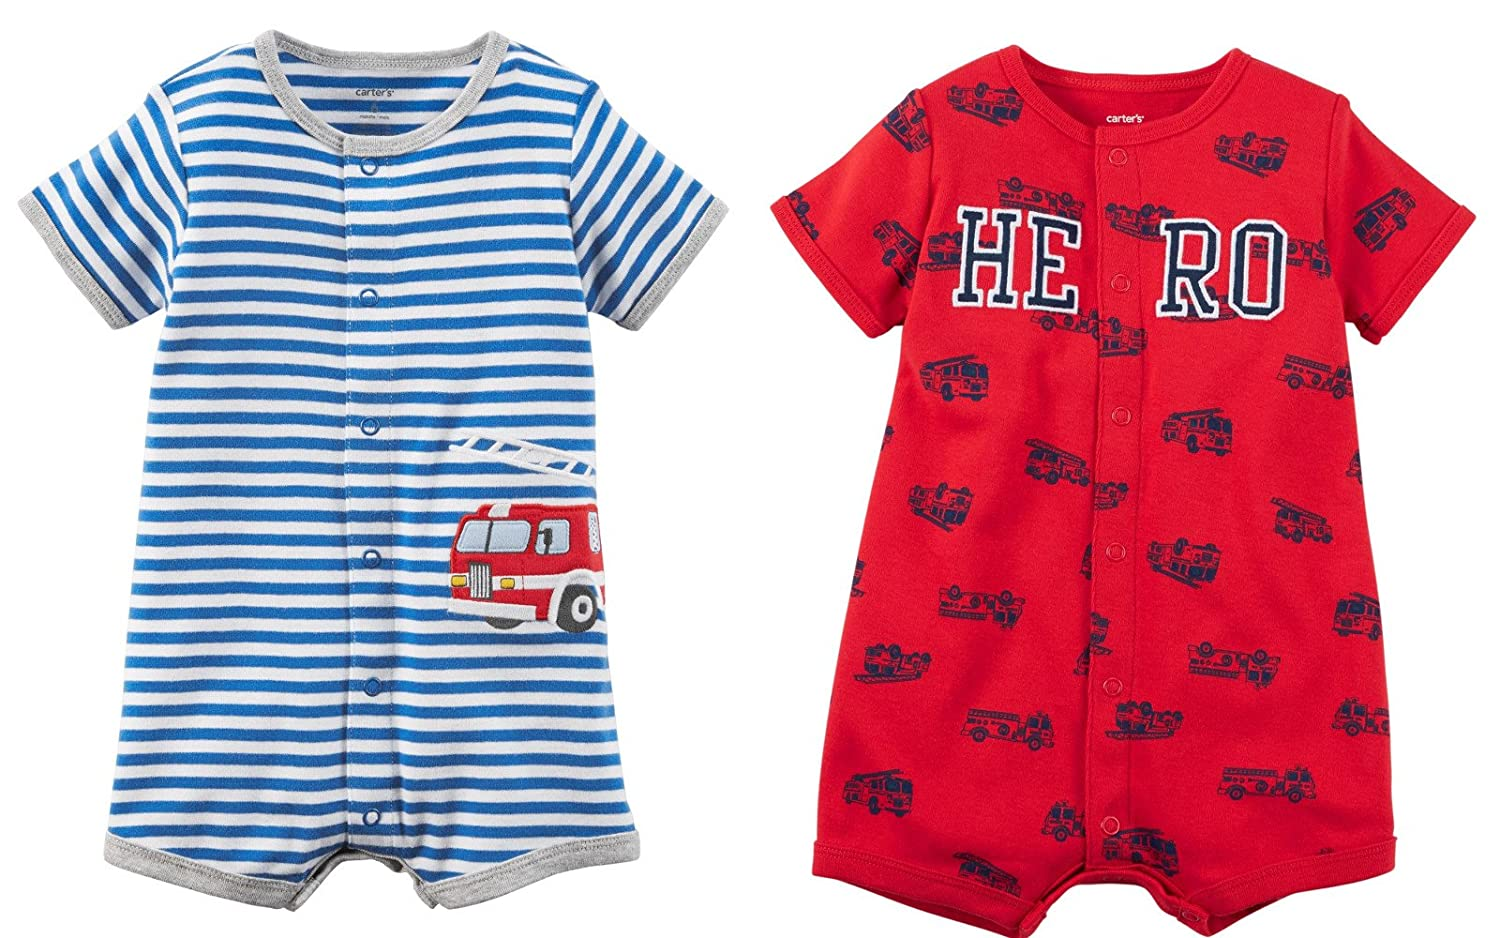 Carter's Stripe Baby Clothing SHIRT ベビーボーイズ B07CNPT3NY Red Blue and and White Stripe Fire Truck and Red Hero Newborn Newborn|Blue and White Stripe Fire Truck and Red Hero, MOBBS:2379d1b6 --- itxassou.fr